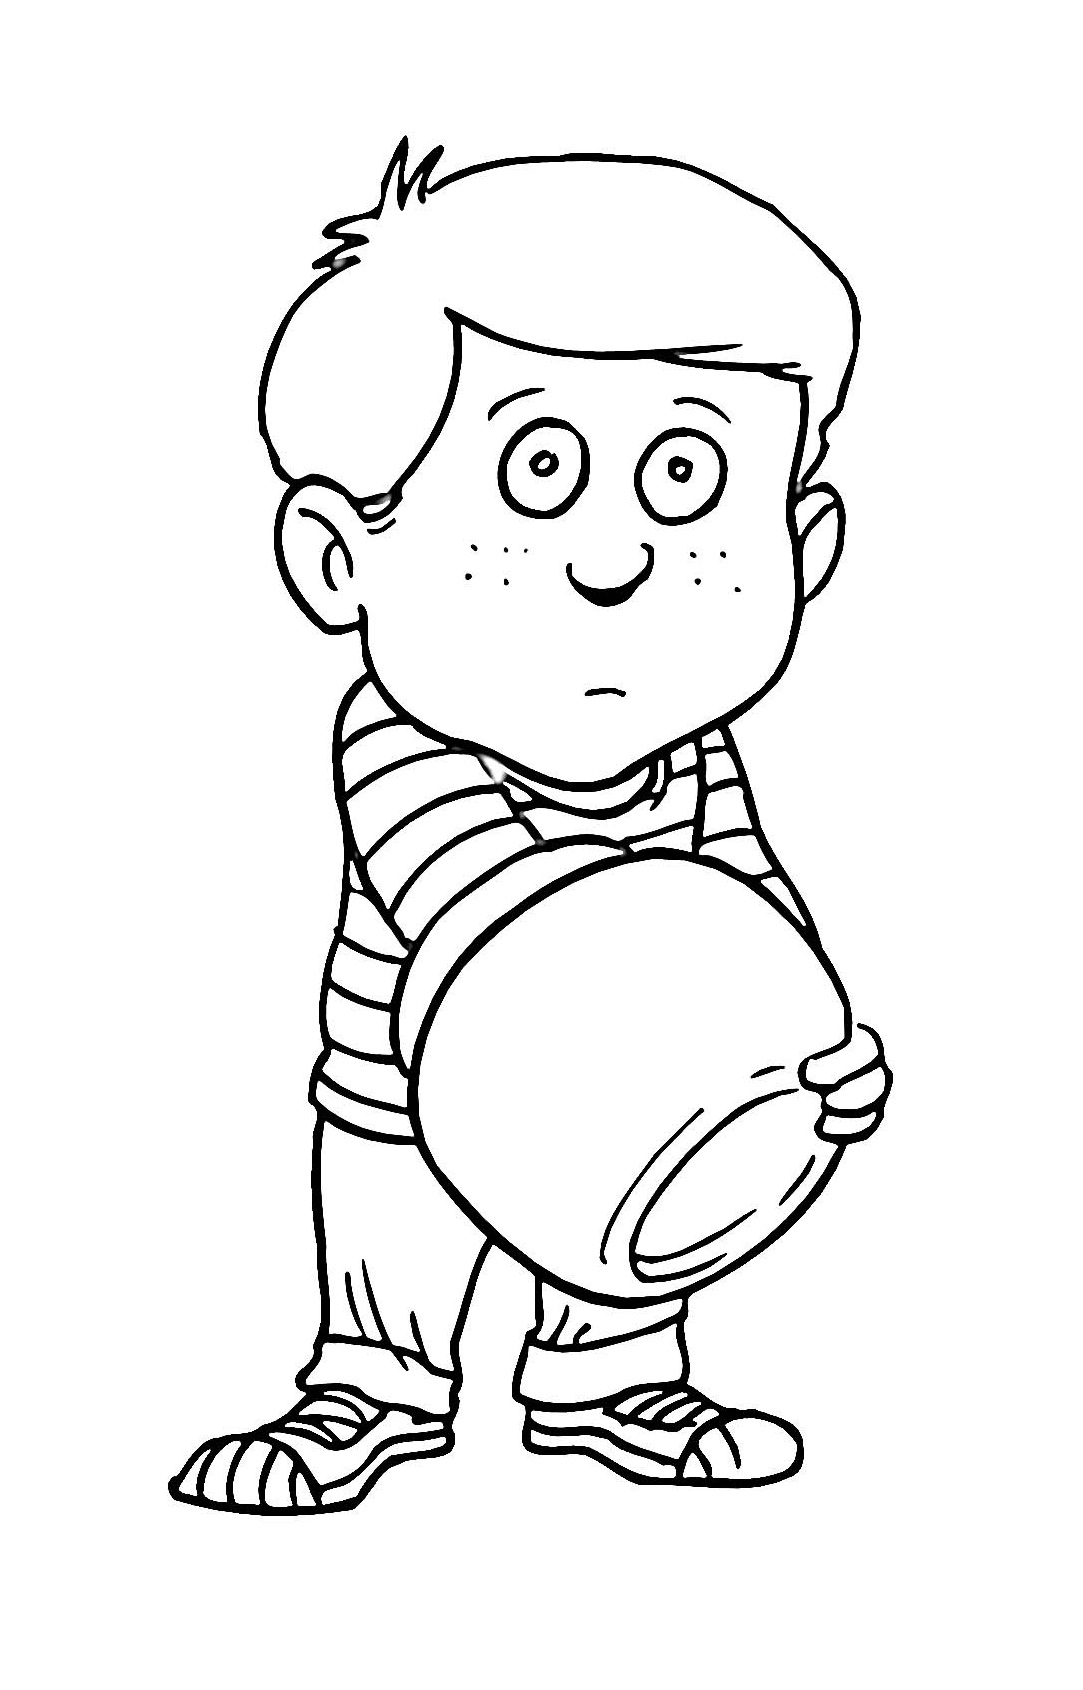 boy coloring page cartoon boy coloring page wecoloringpagecom page boy coloring